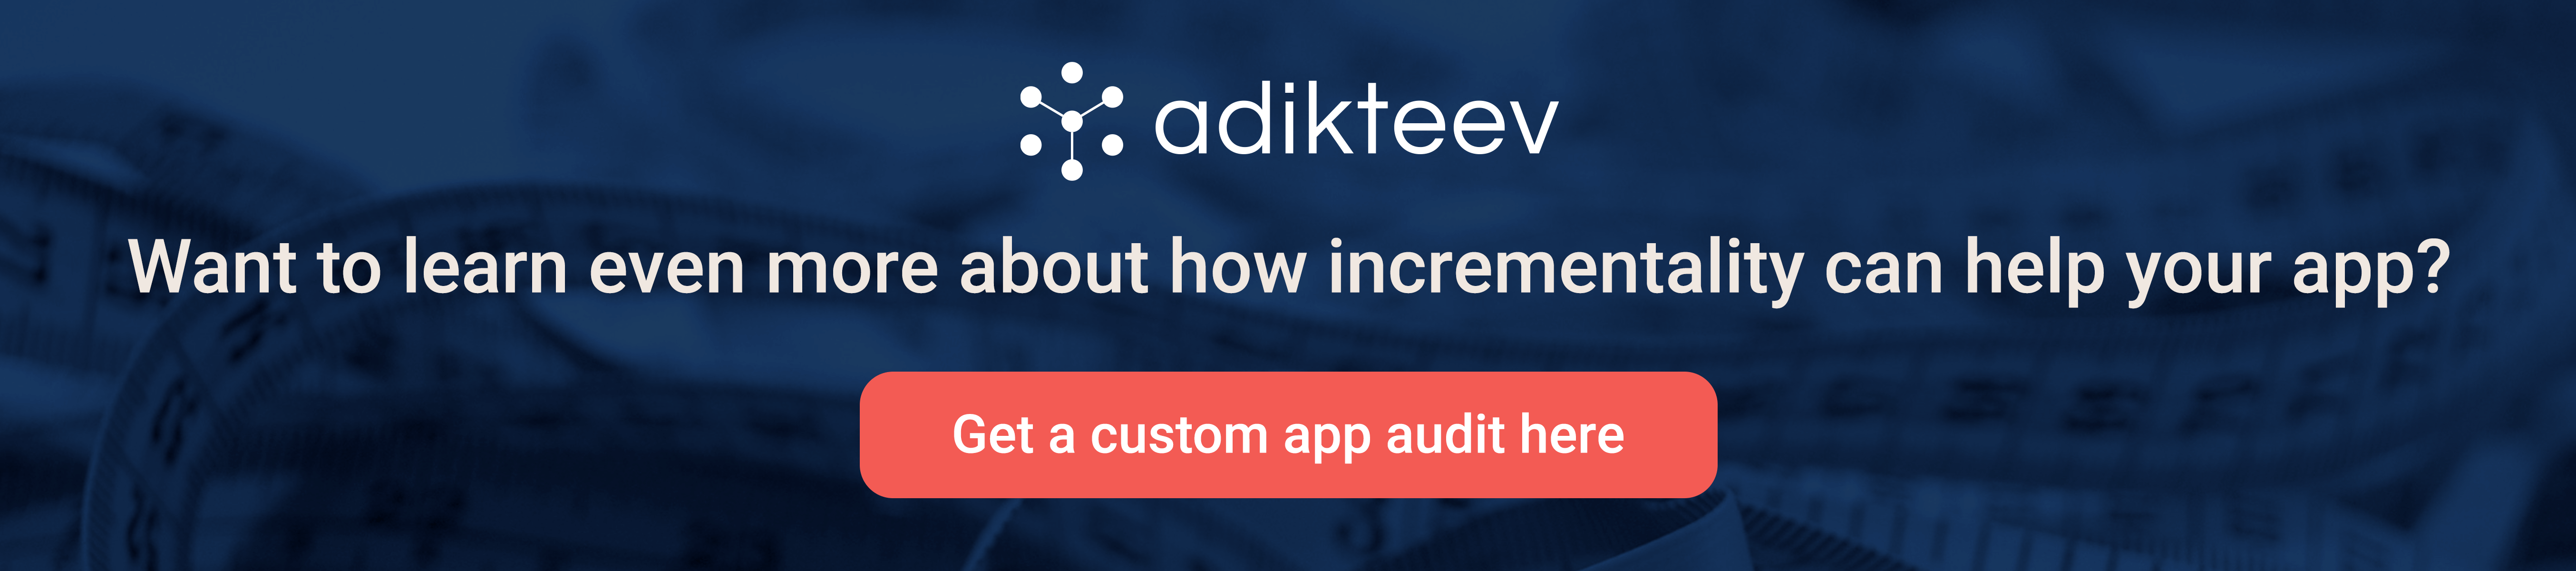 Adikteev logo on a blue background. Text reads: Want to learn more about how incrementality can help your app? Get a custom app audit here.